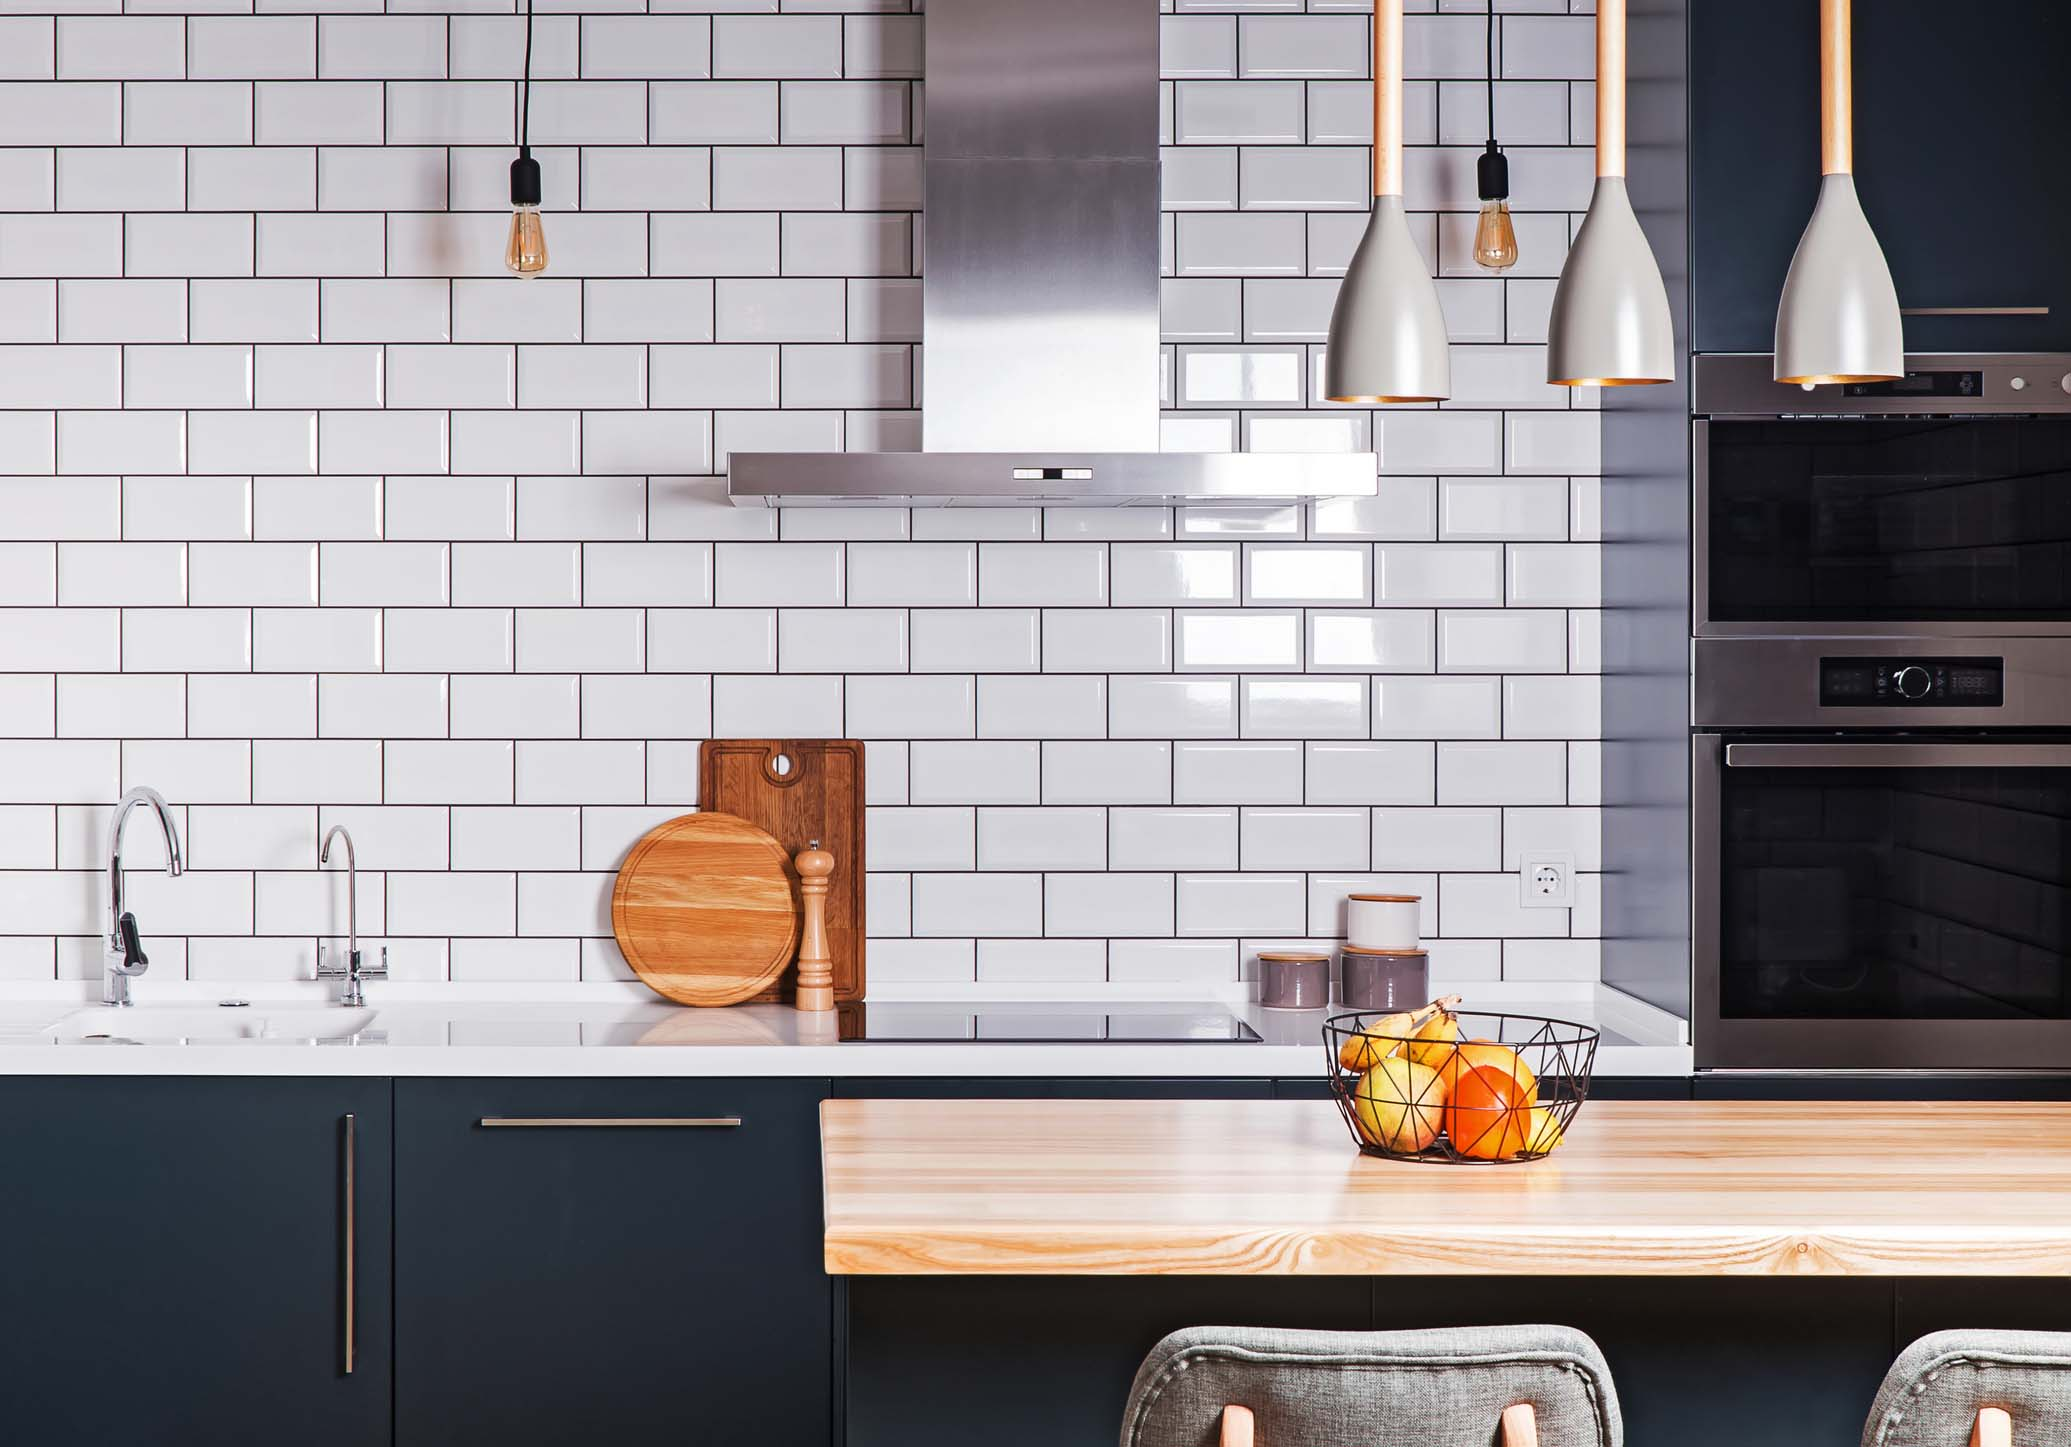 How To Choose The Right Grout Color For Your Tile Why Tile